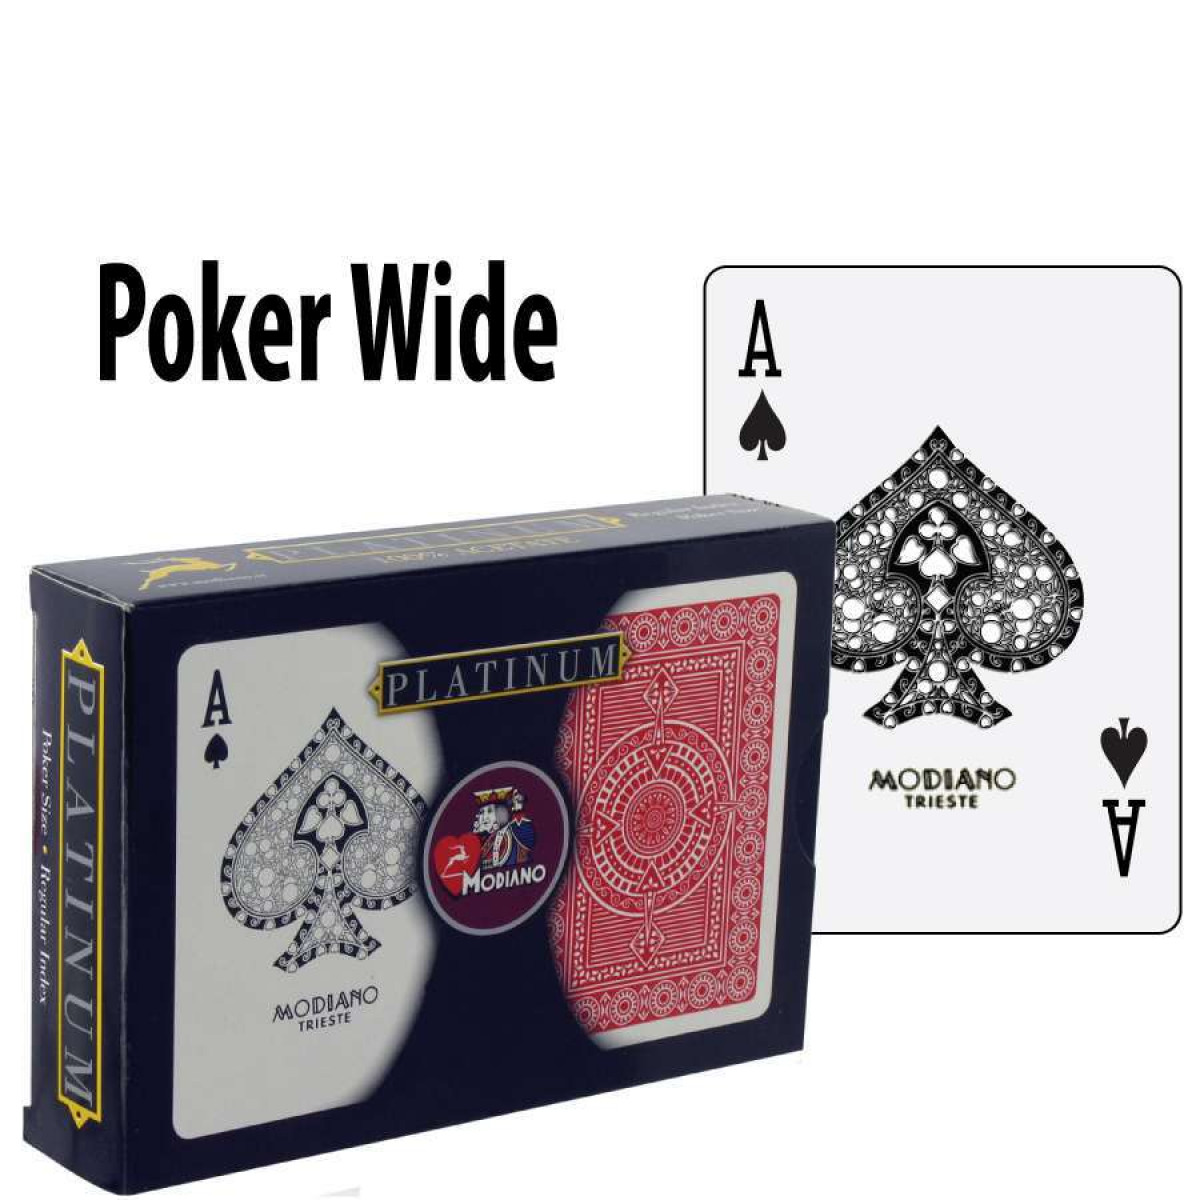 The Poker Store is your heaven for all poker supplies. We carry a huge selection on 14 gram clay poker chips, plastic playing cards, and other poker supplies.